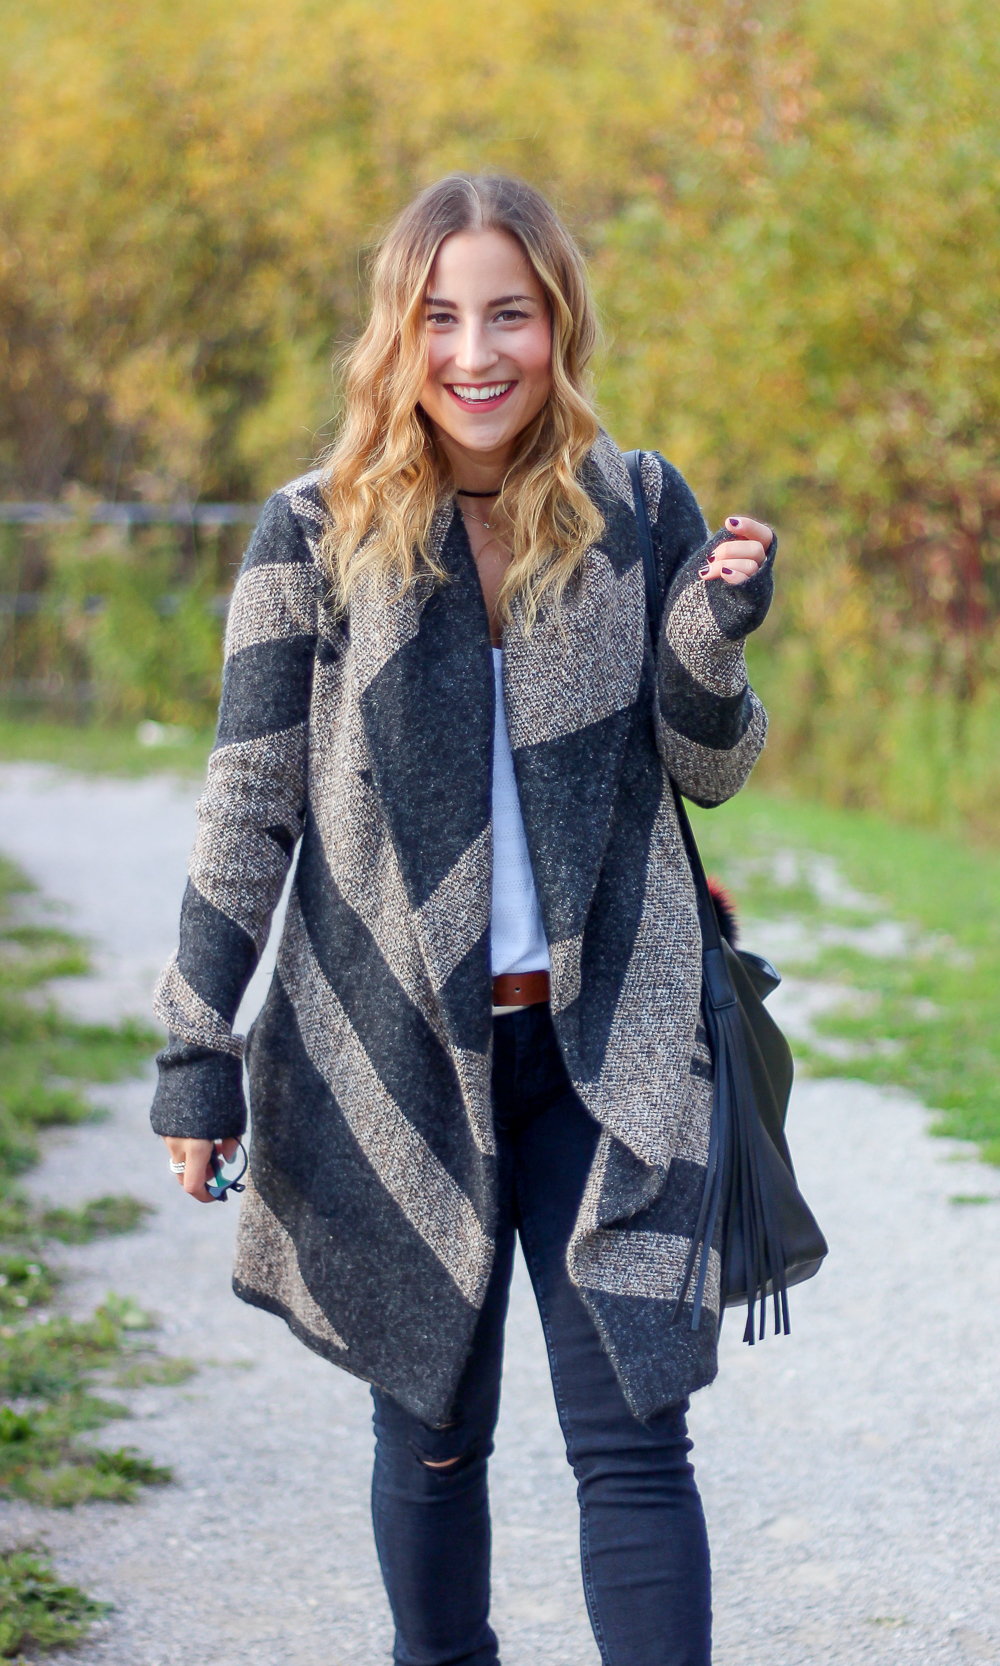 Cozy fall sweater from Le Chateau, as styled by Toronto fashion blogger, Jackie Goldhar, from Something About That